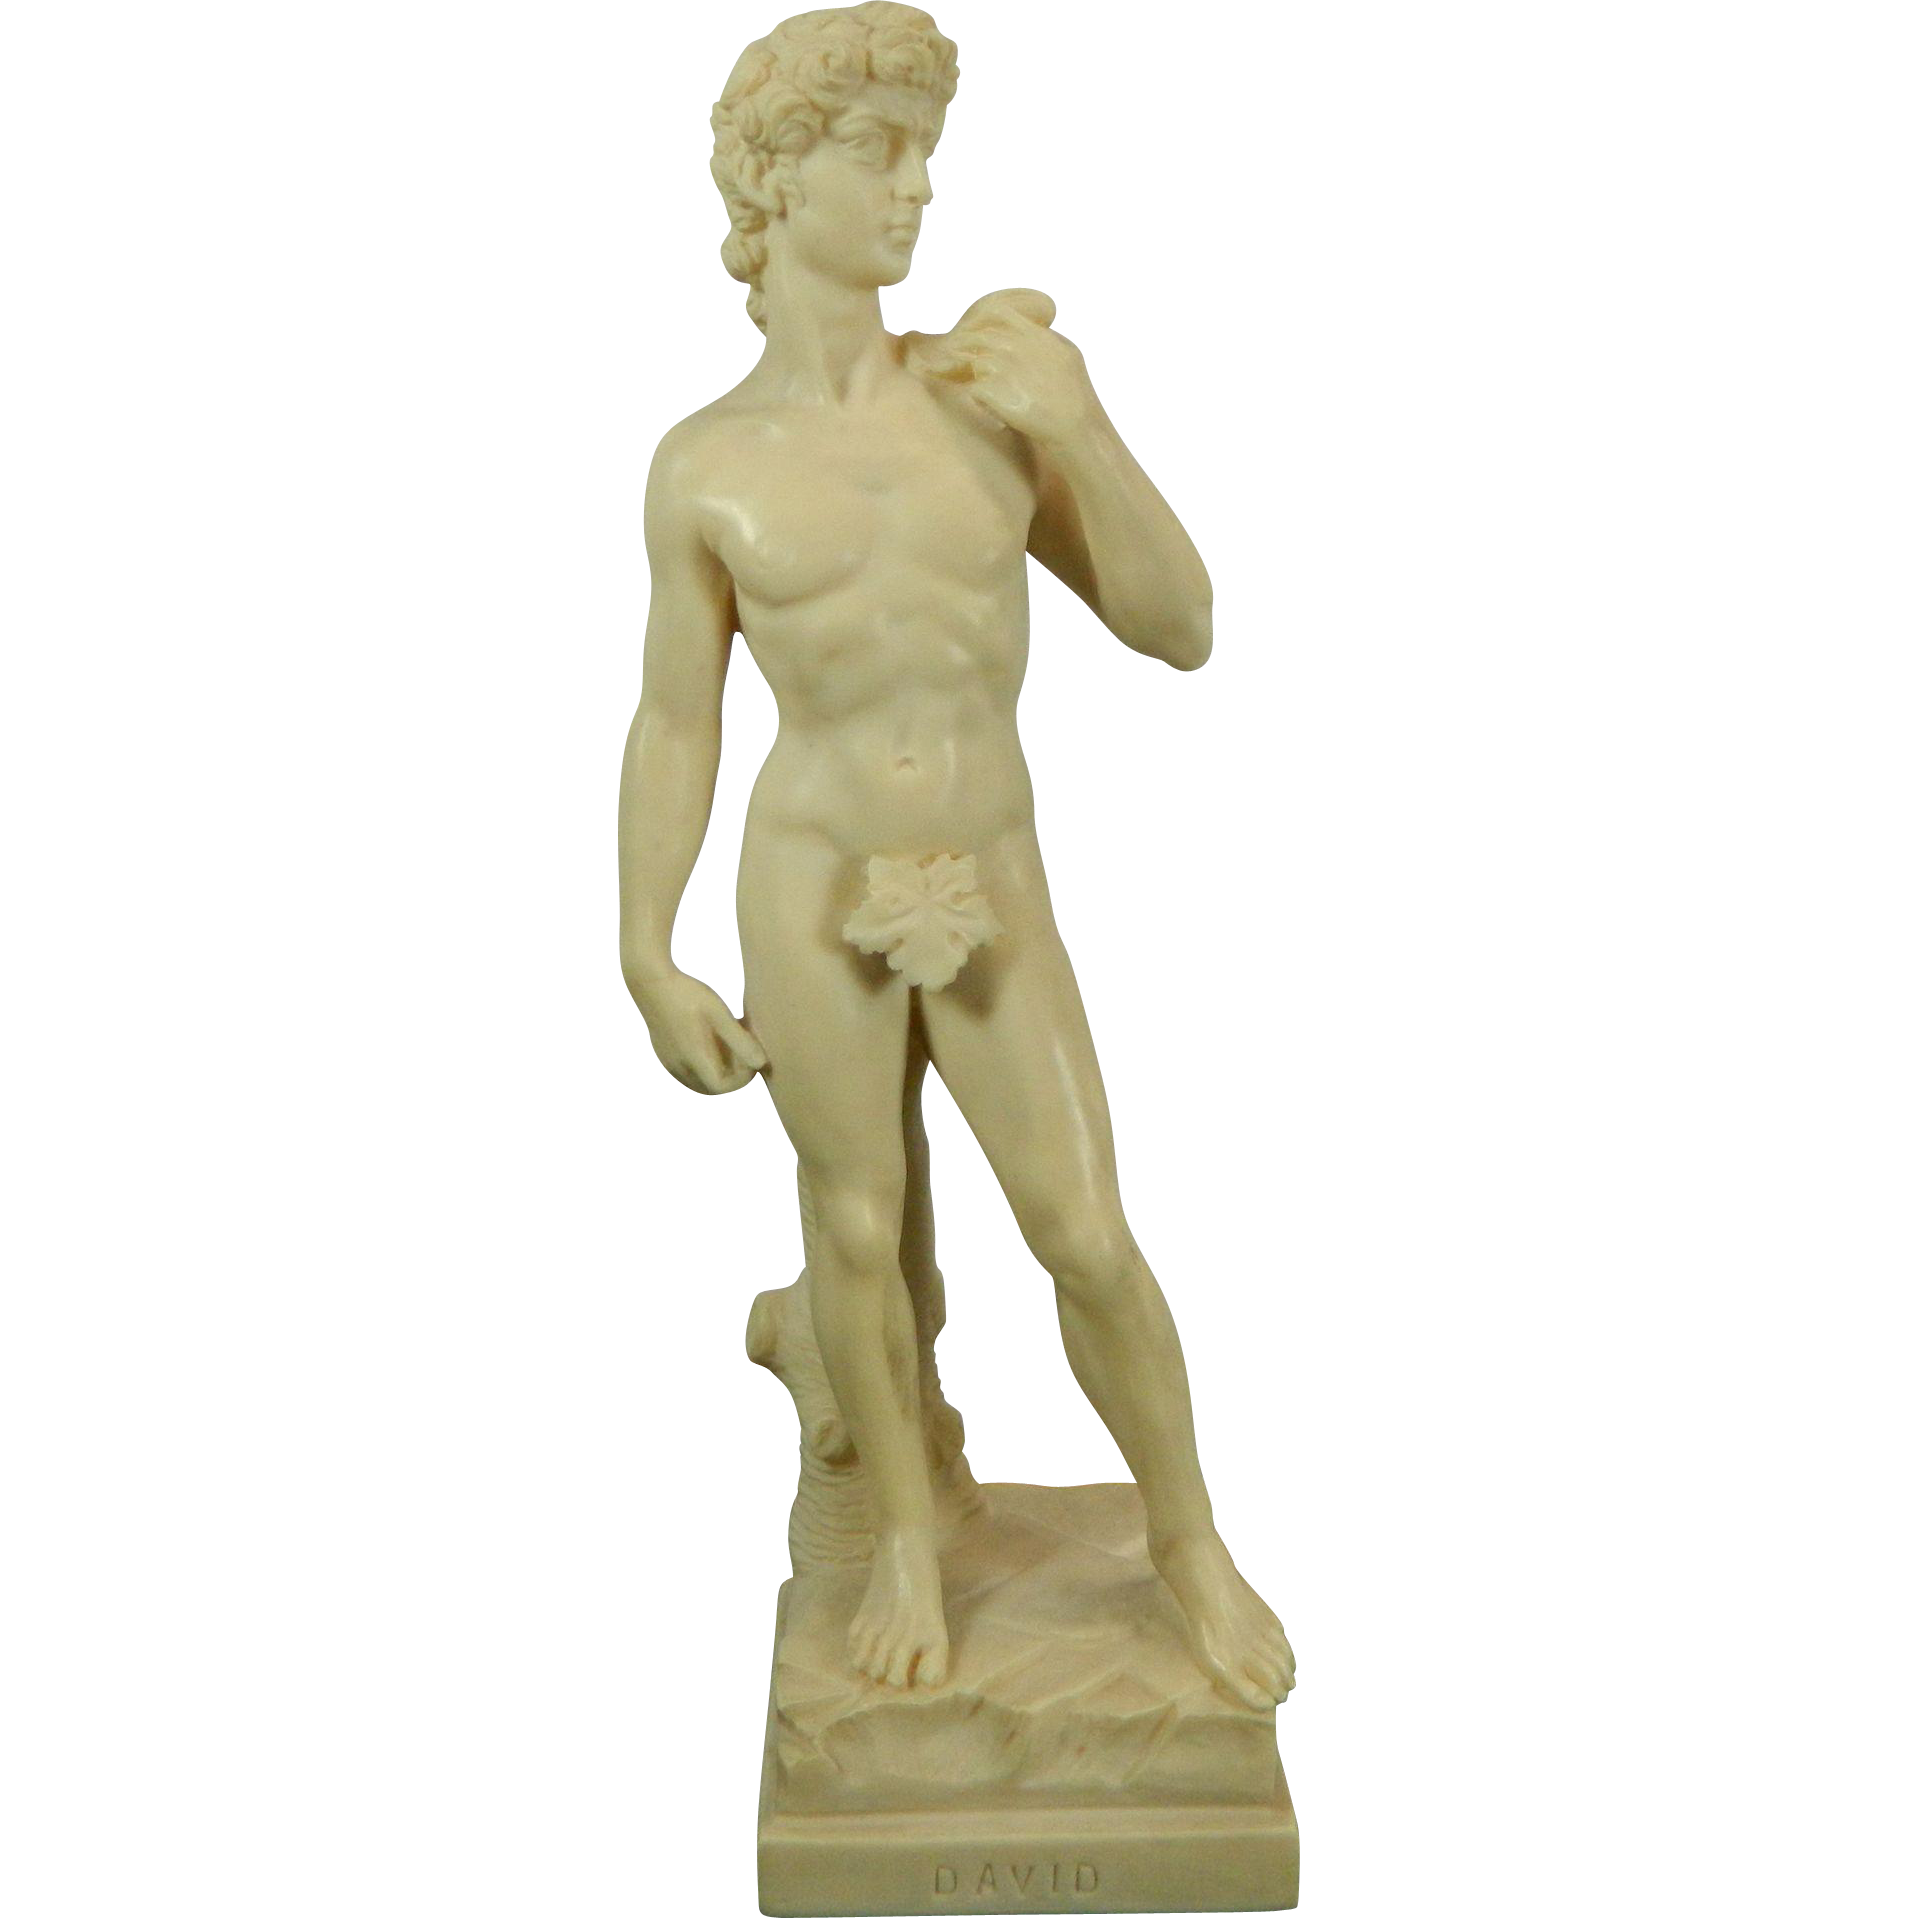 statues of david in renaissance art essay Michelangelo and donatello made impressive accomplishments in christian art during the renaissance statues of david donatello-s-and-michelangelo-s-sculpture.